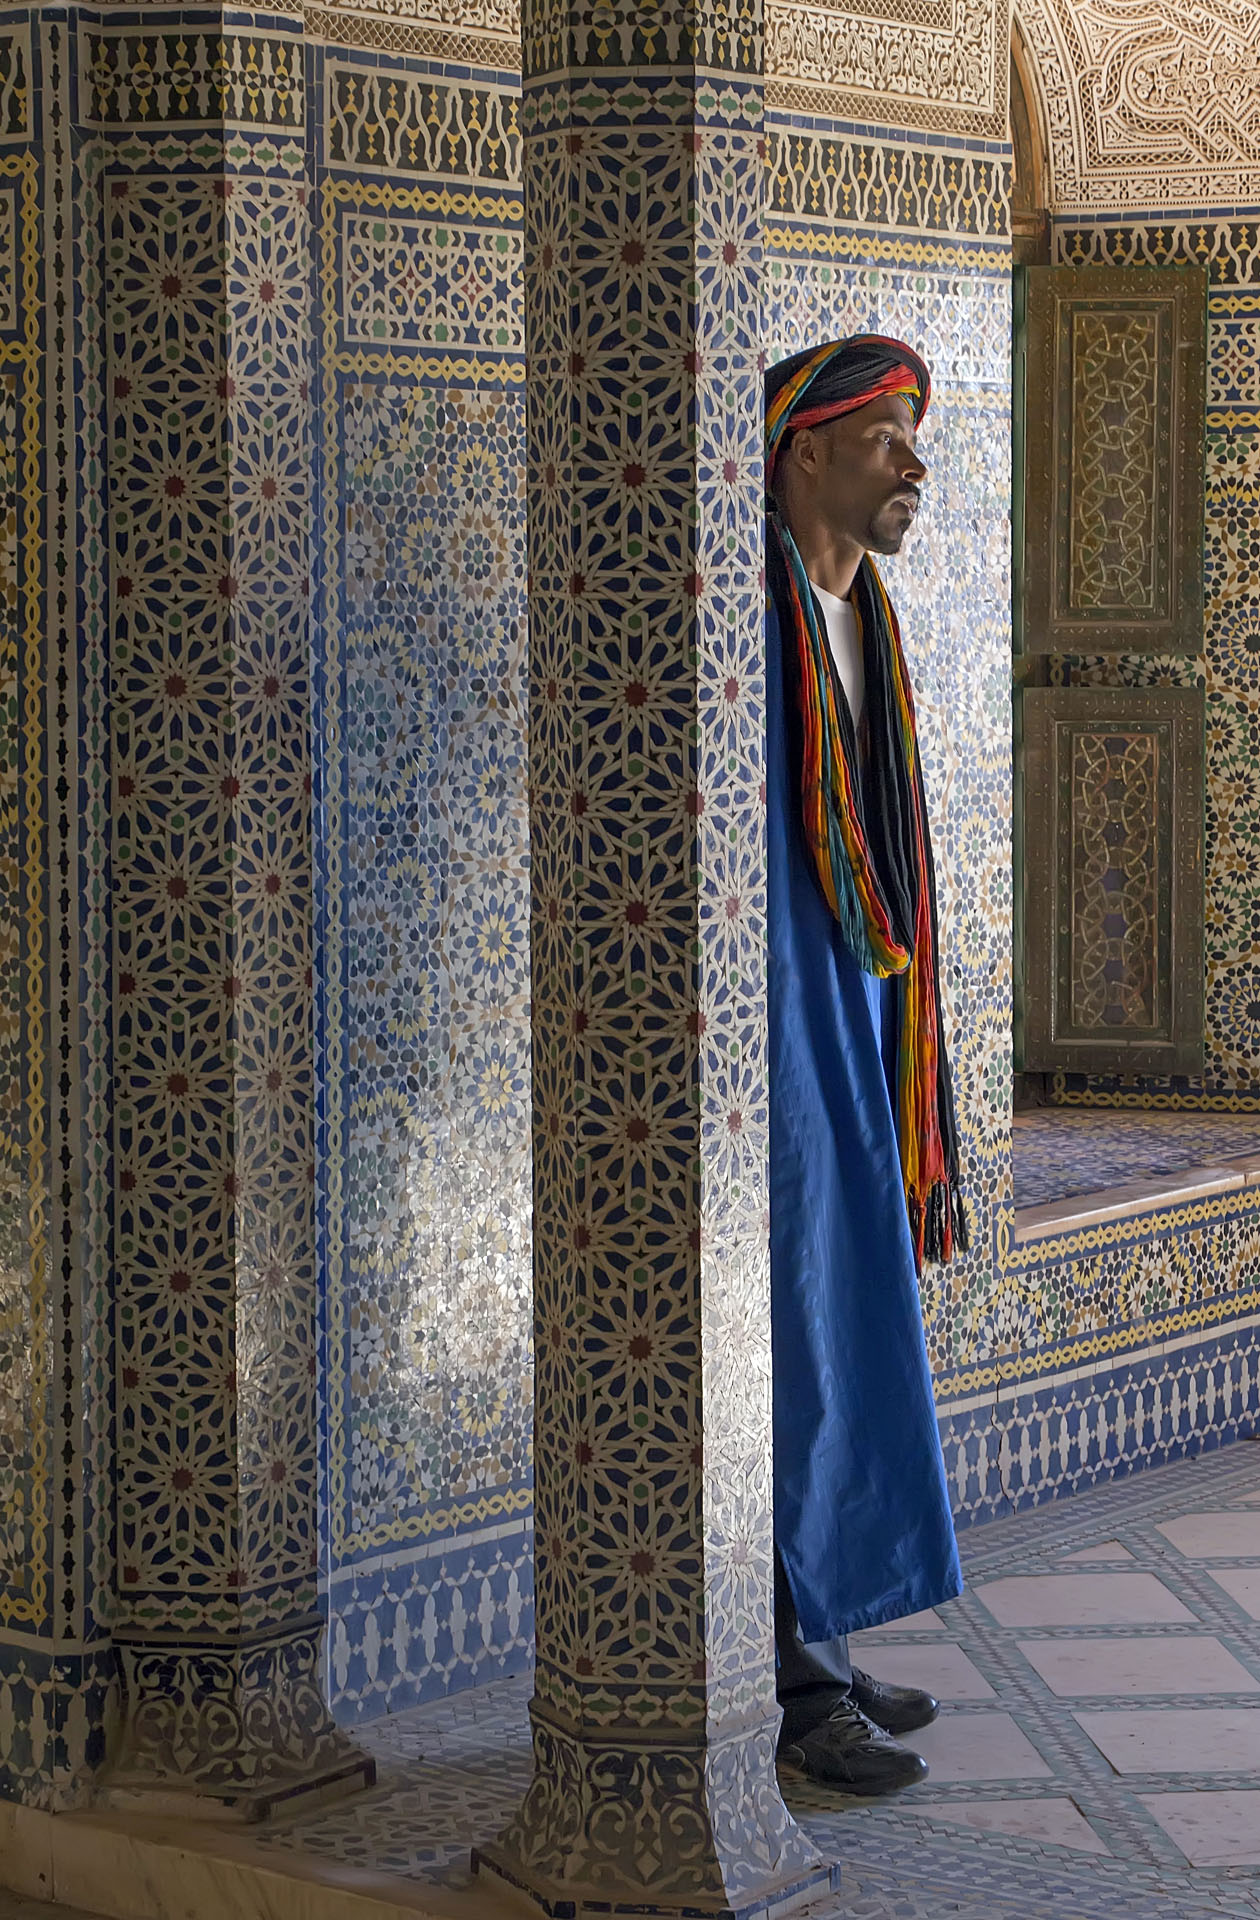 """Marrakesh, Morocco   Gary Anthes  Photograph  10.5"""" x 16"""" or 18"""" x 24"""" framed  $325   Click here to Inquire"""